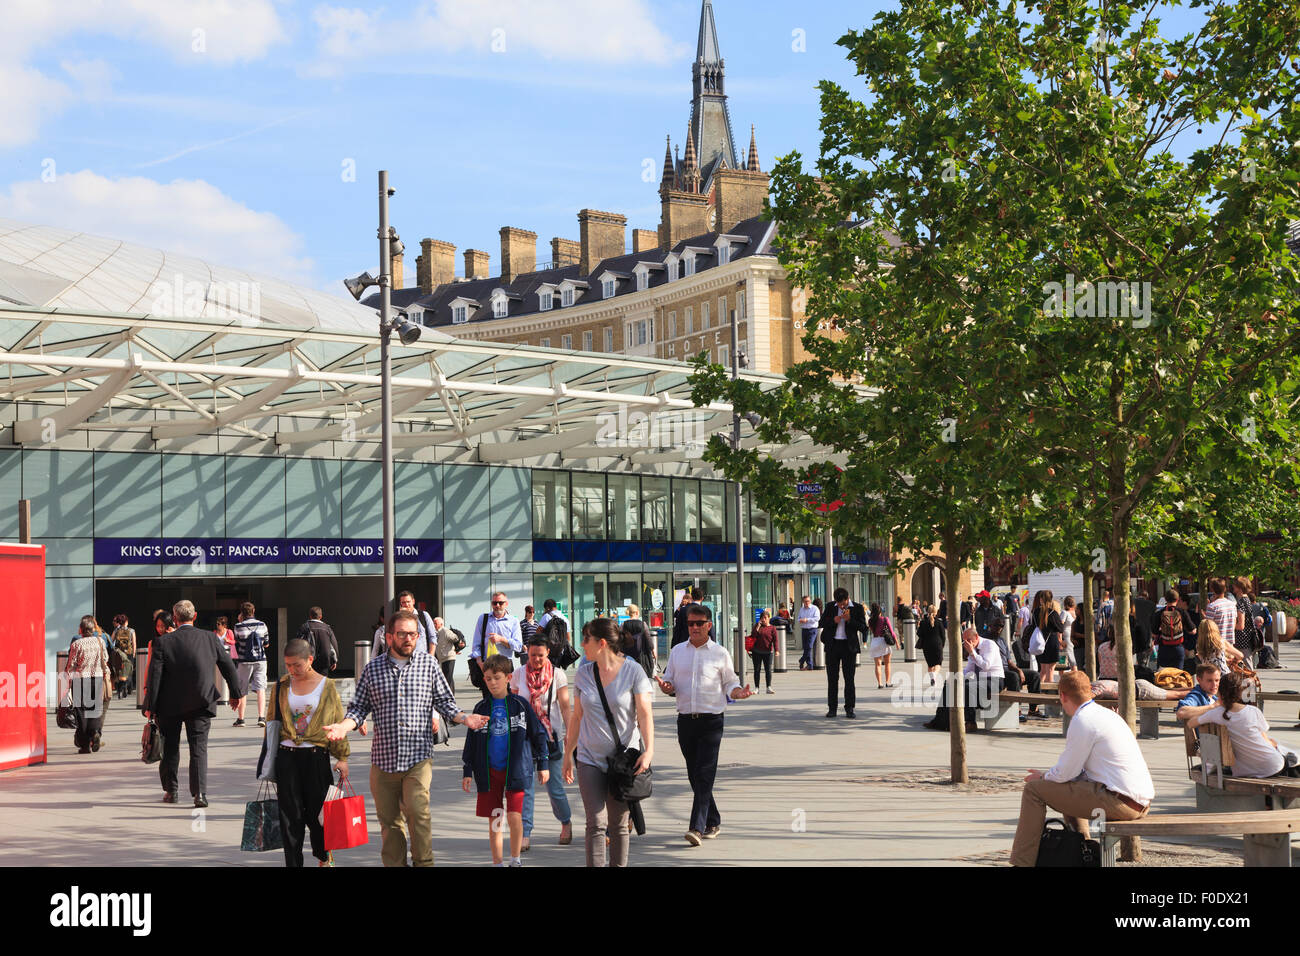 People around the entrance to King's Cross St Pancras Underground Station in London Stock Photo